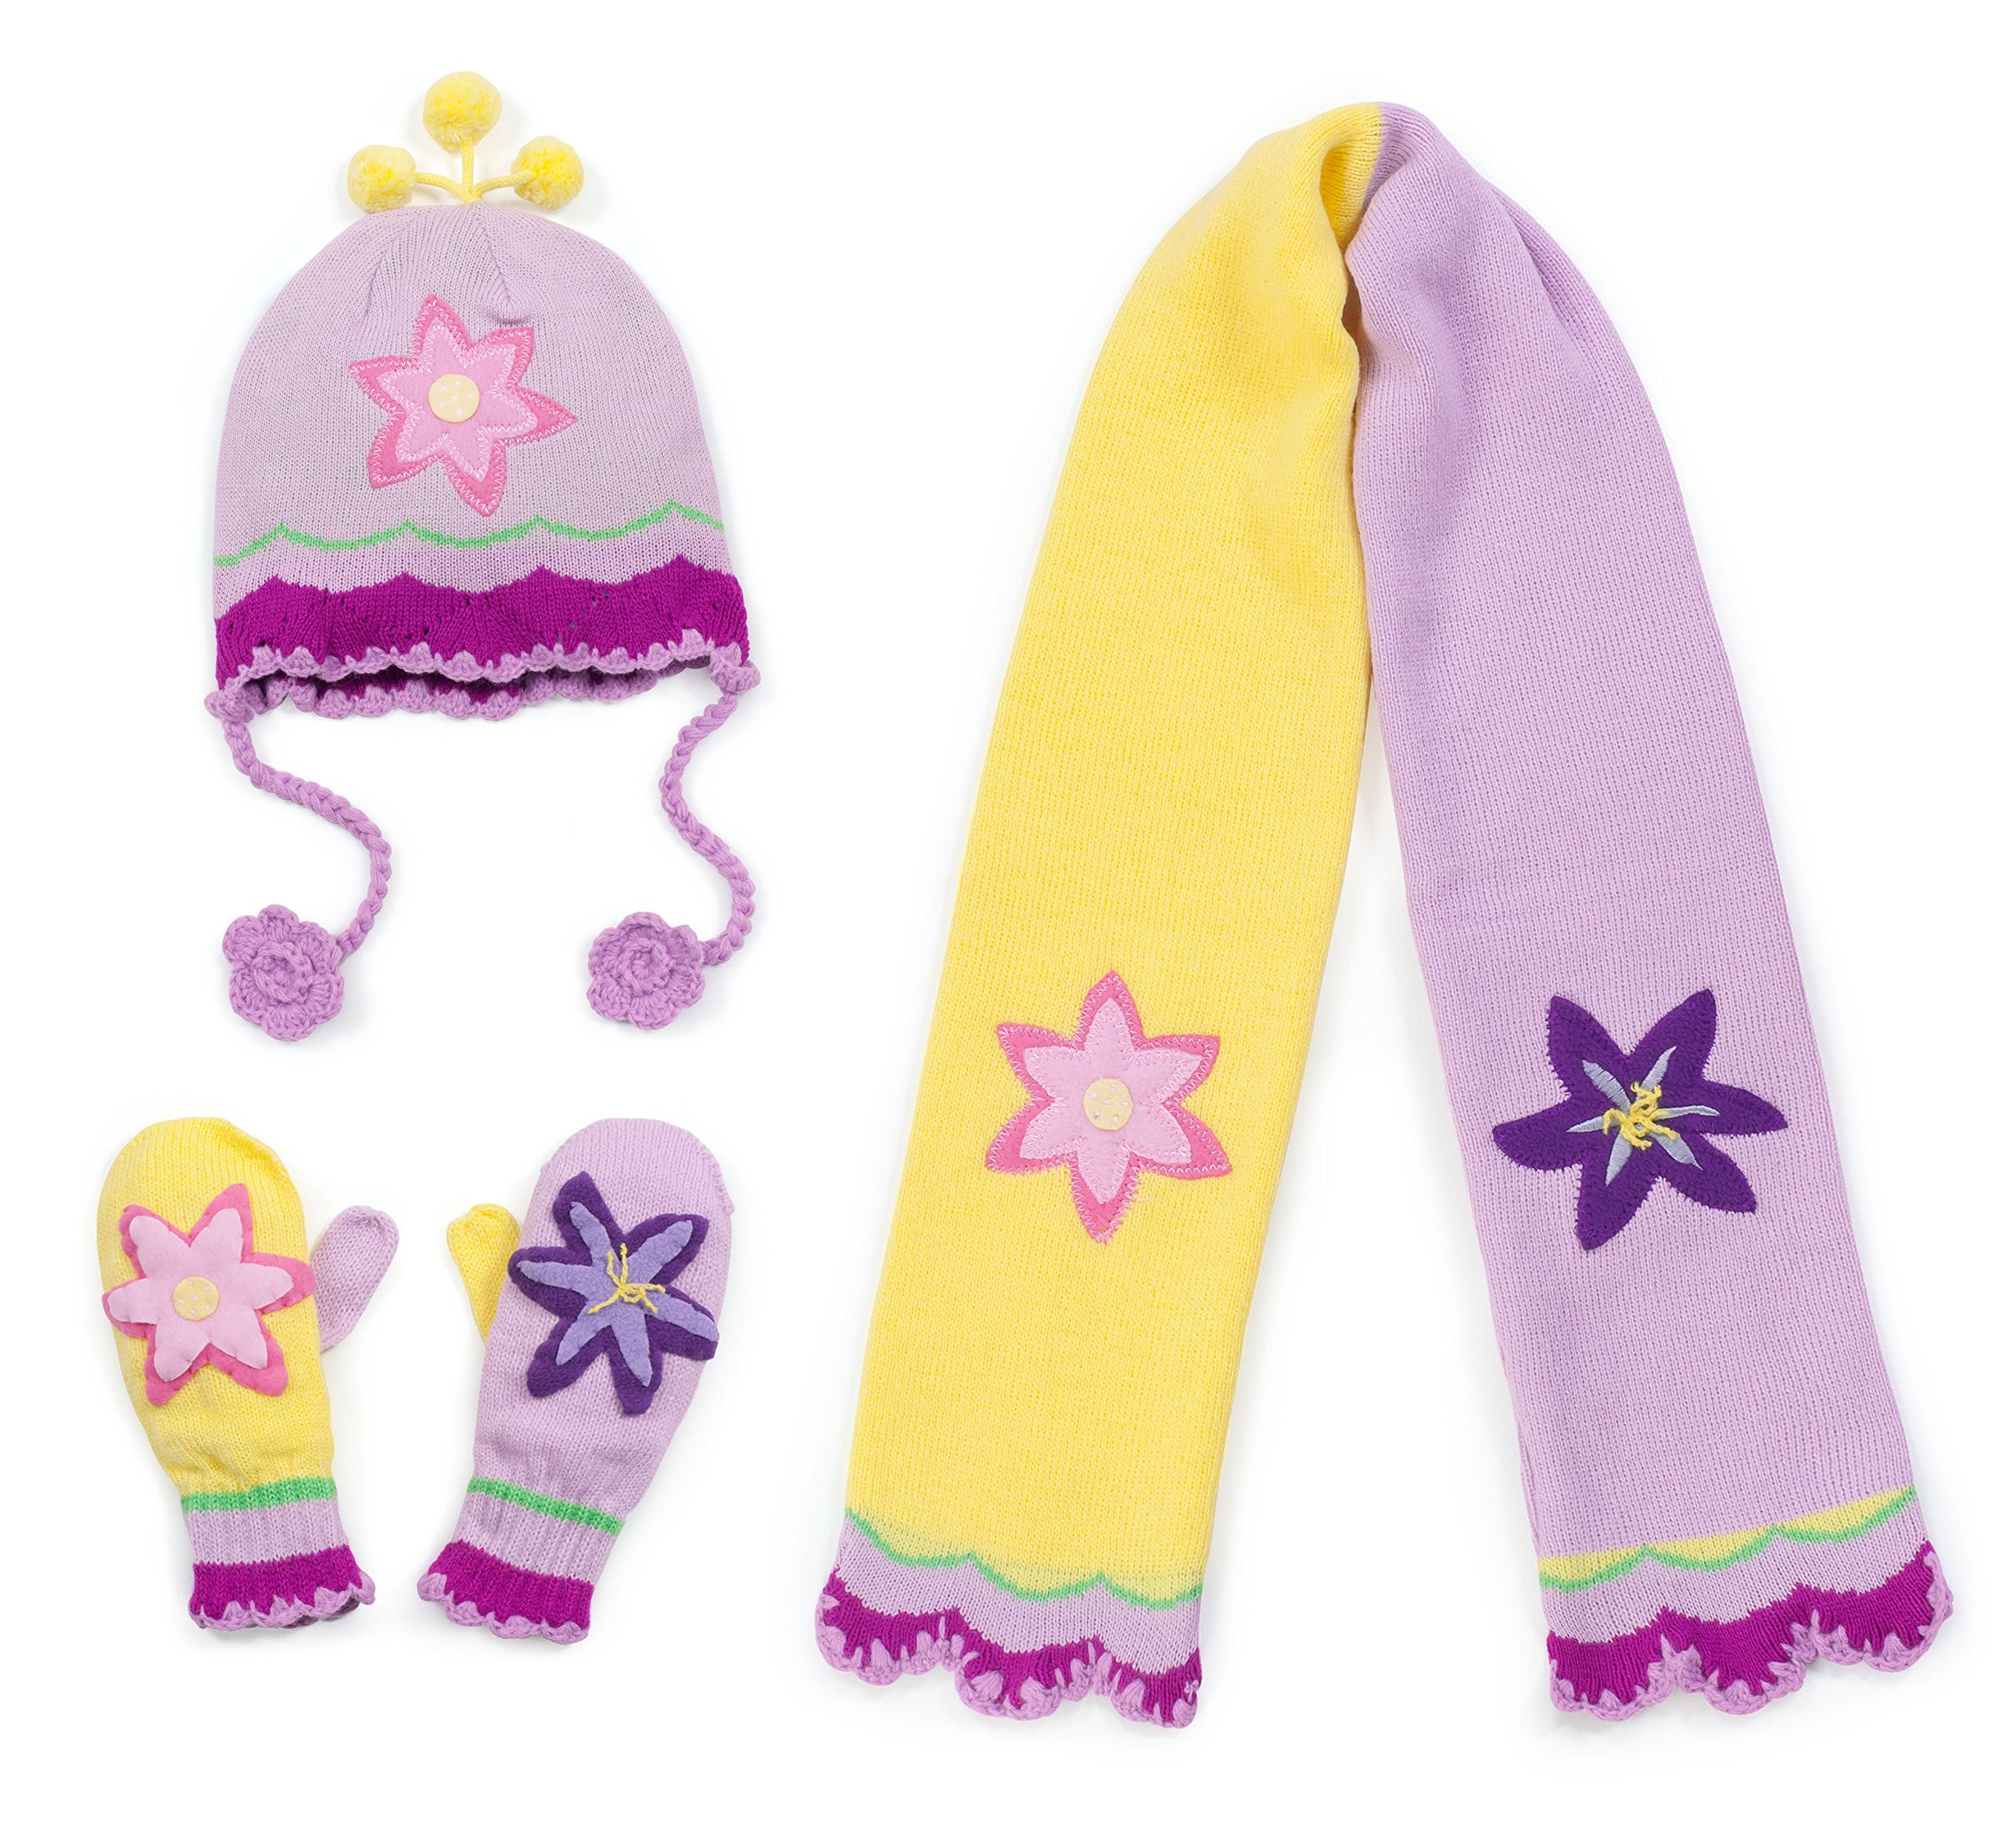 Kidorable Pink and Yellow Lotus Flower Soft Acrylic Knit Hat/Scarf/Mitten Set for Girls, Ages 6-8